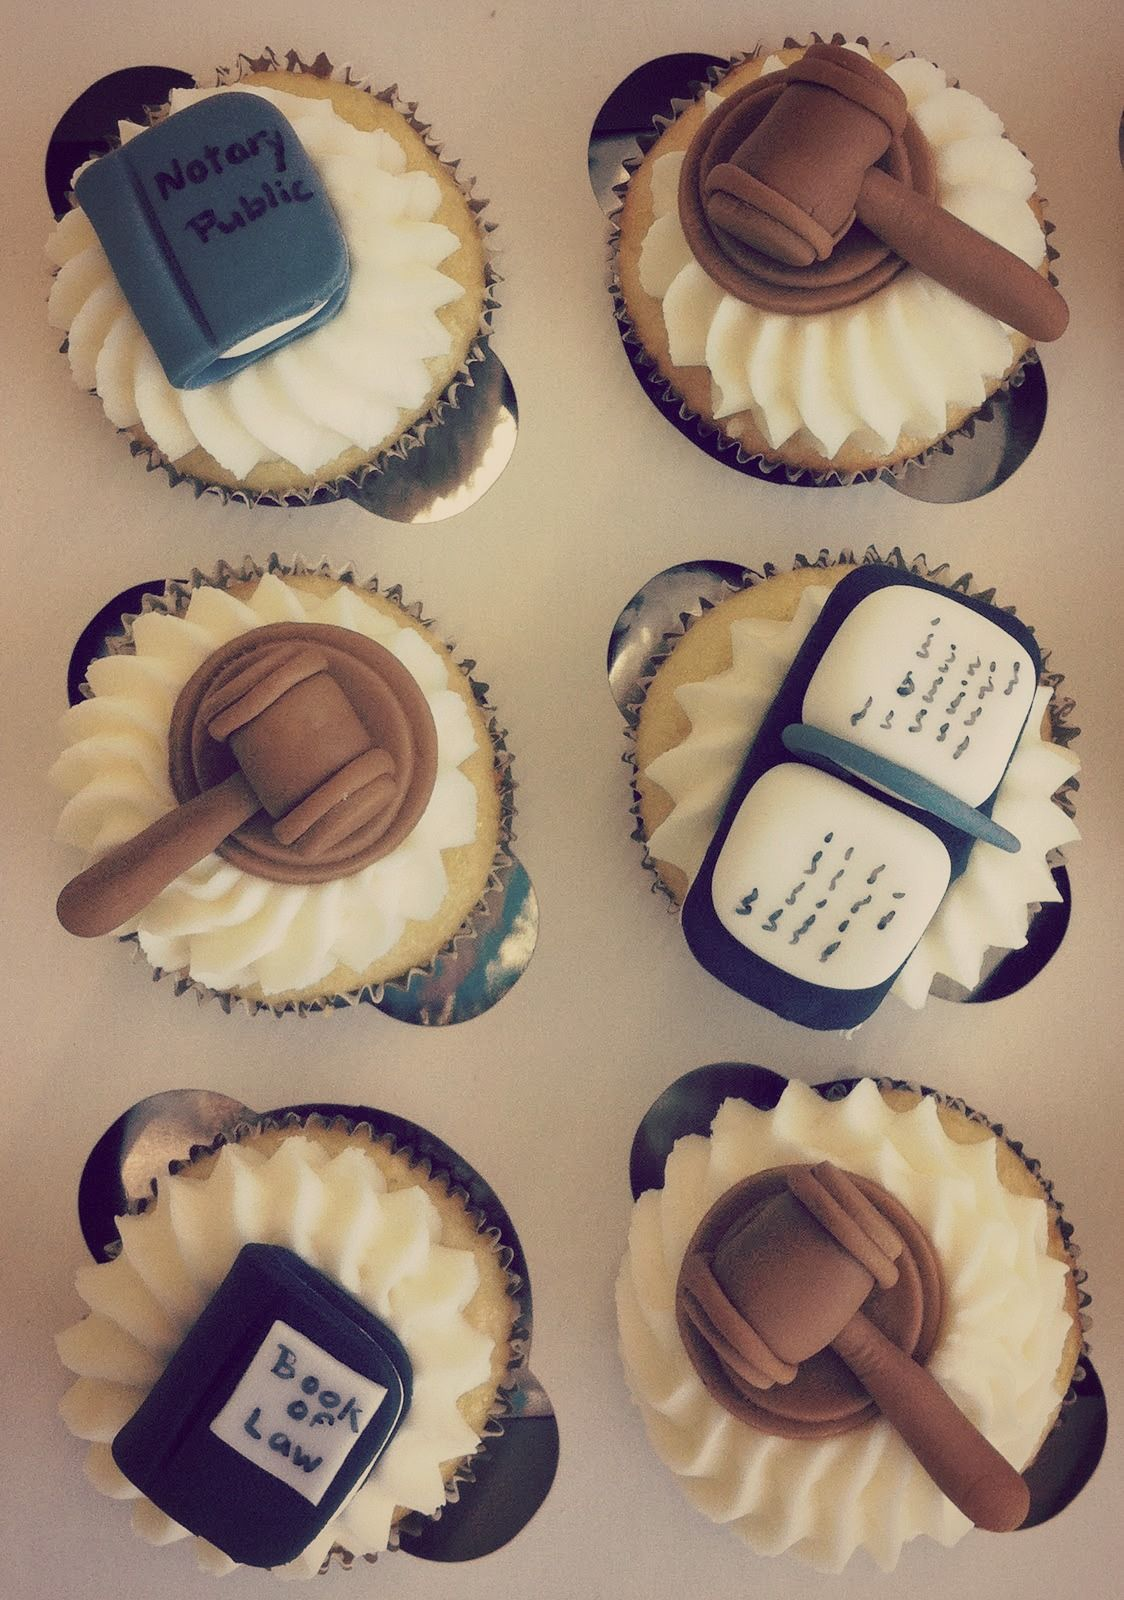 Abogados #Lawyer #Cupcake #Law | I Love Food!!! | Pinterest ...